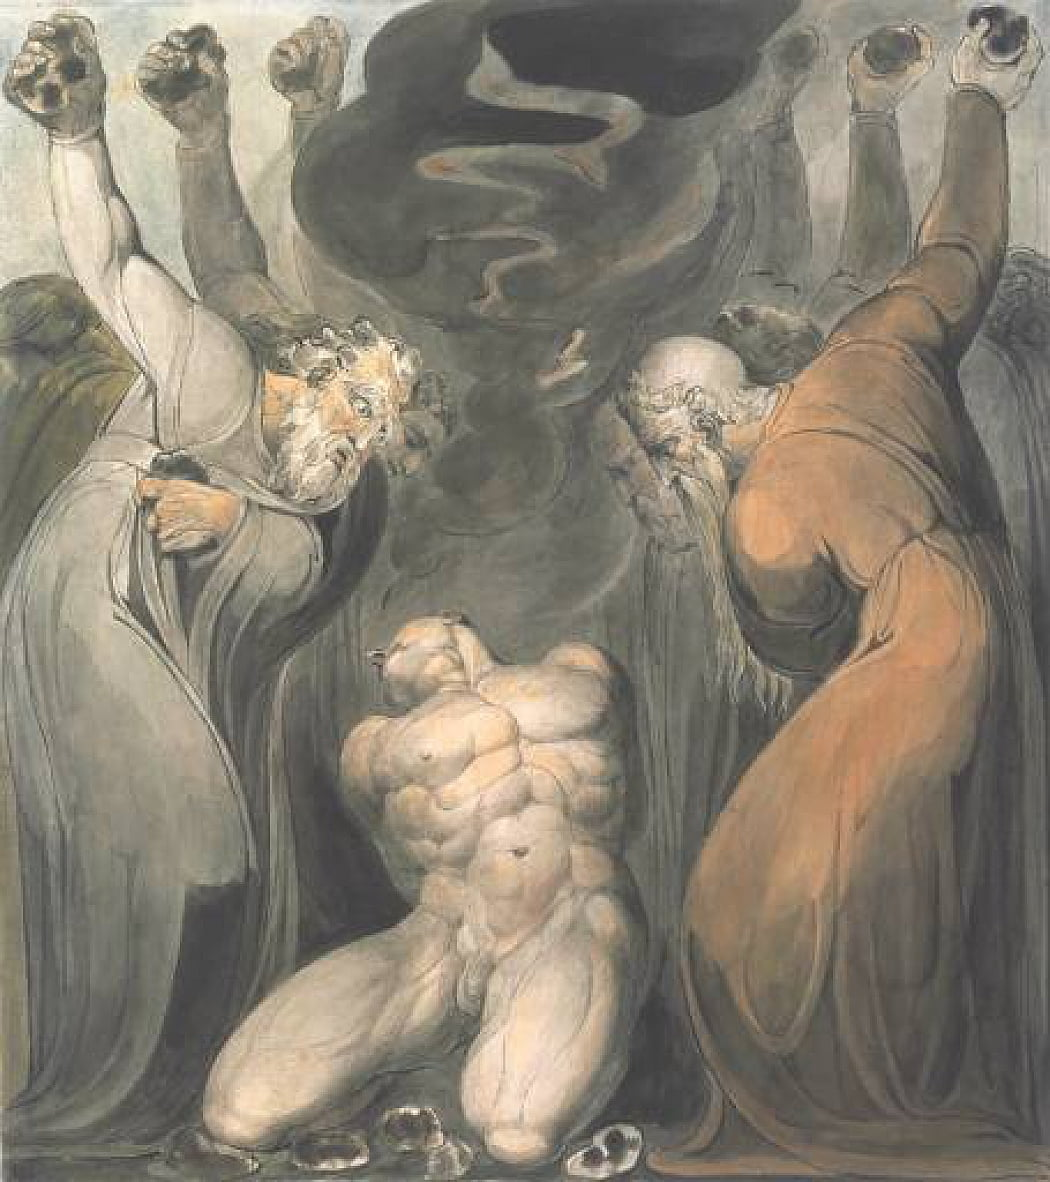 Le blasphémateur - William Blake